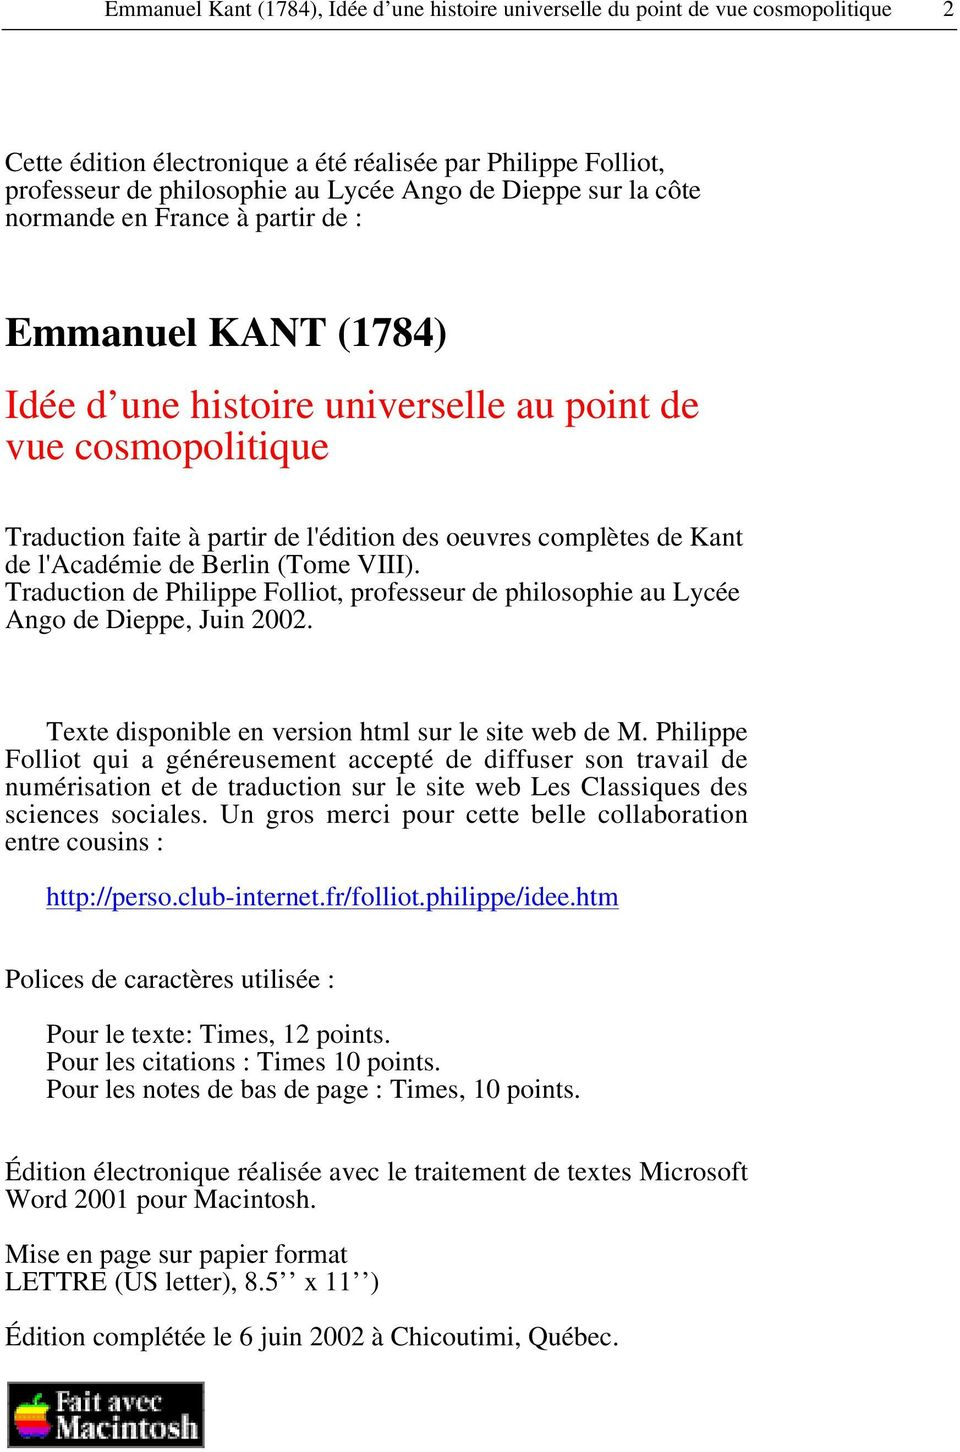 Kant de l'académie de Berlin (Tome VIII). Traduction de Philippe Folliot, professeur de philosophie au Lycée Ango de Dieppe, Juin 2002. Texte disponible en version html sur le site web de M.